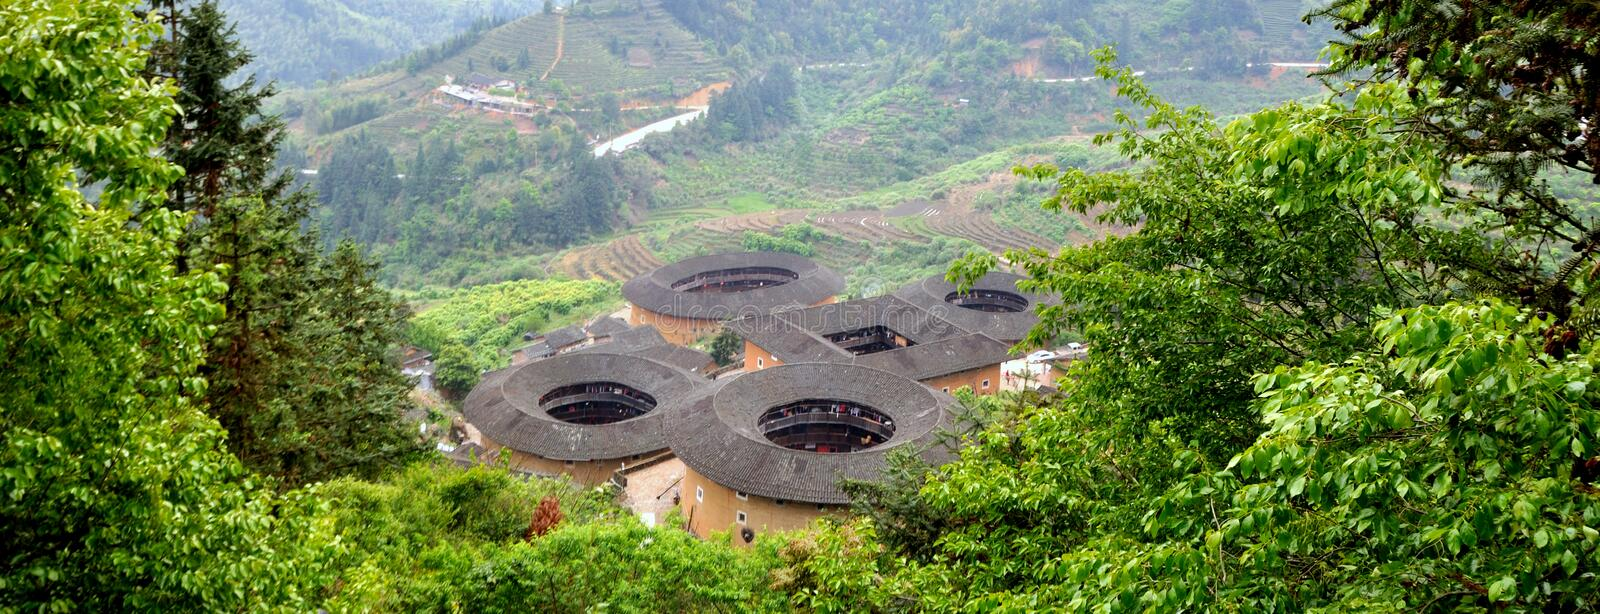 Download Earth Castle In Valley, Fujian, South Of China Stock Photo - Image: 30273116